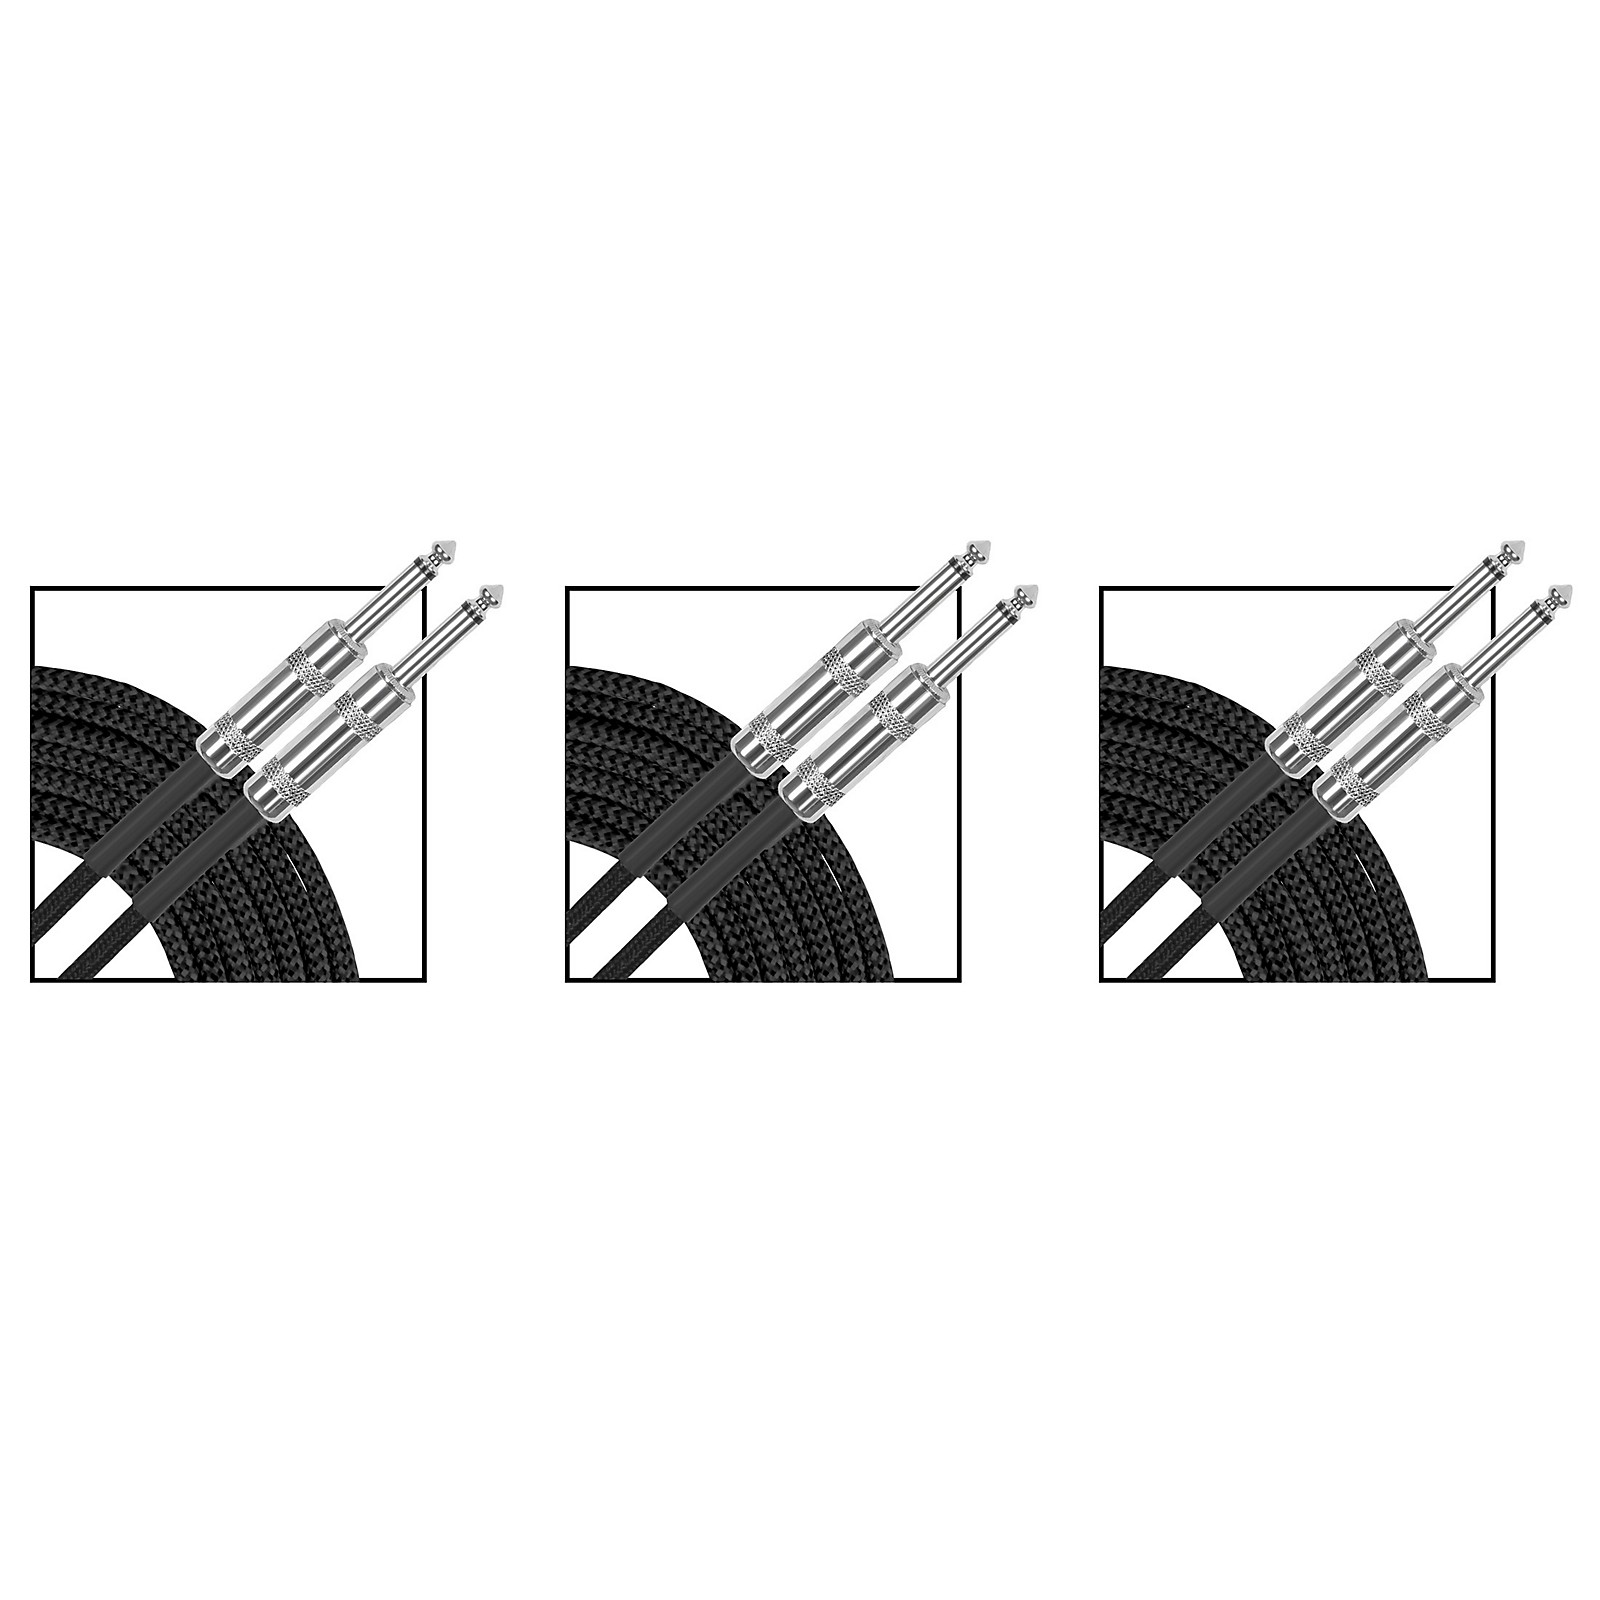 Musician's Gear Standard Instrument Cable Braid - 20 ft. - 3 Pack